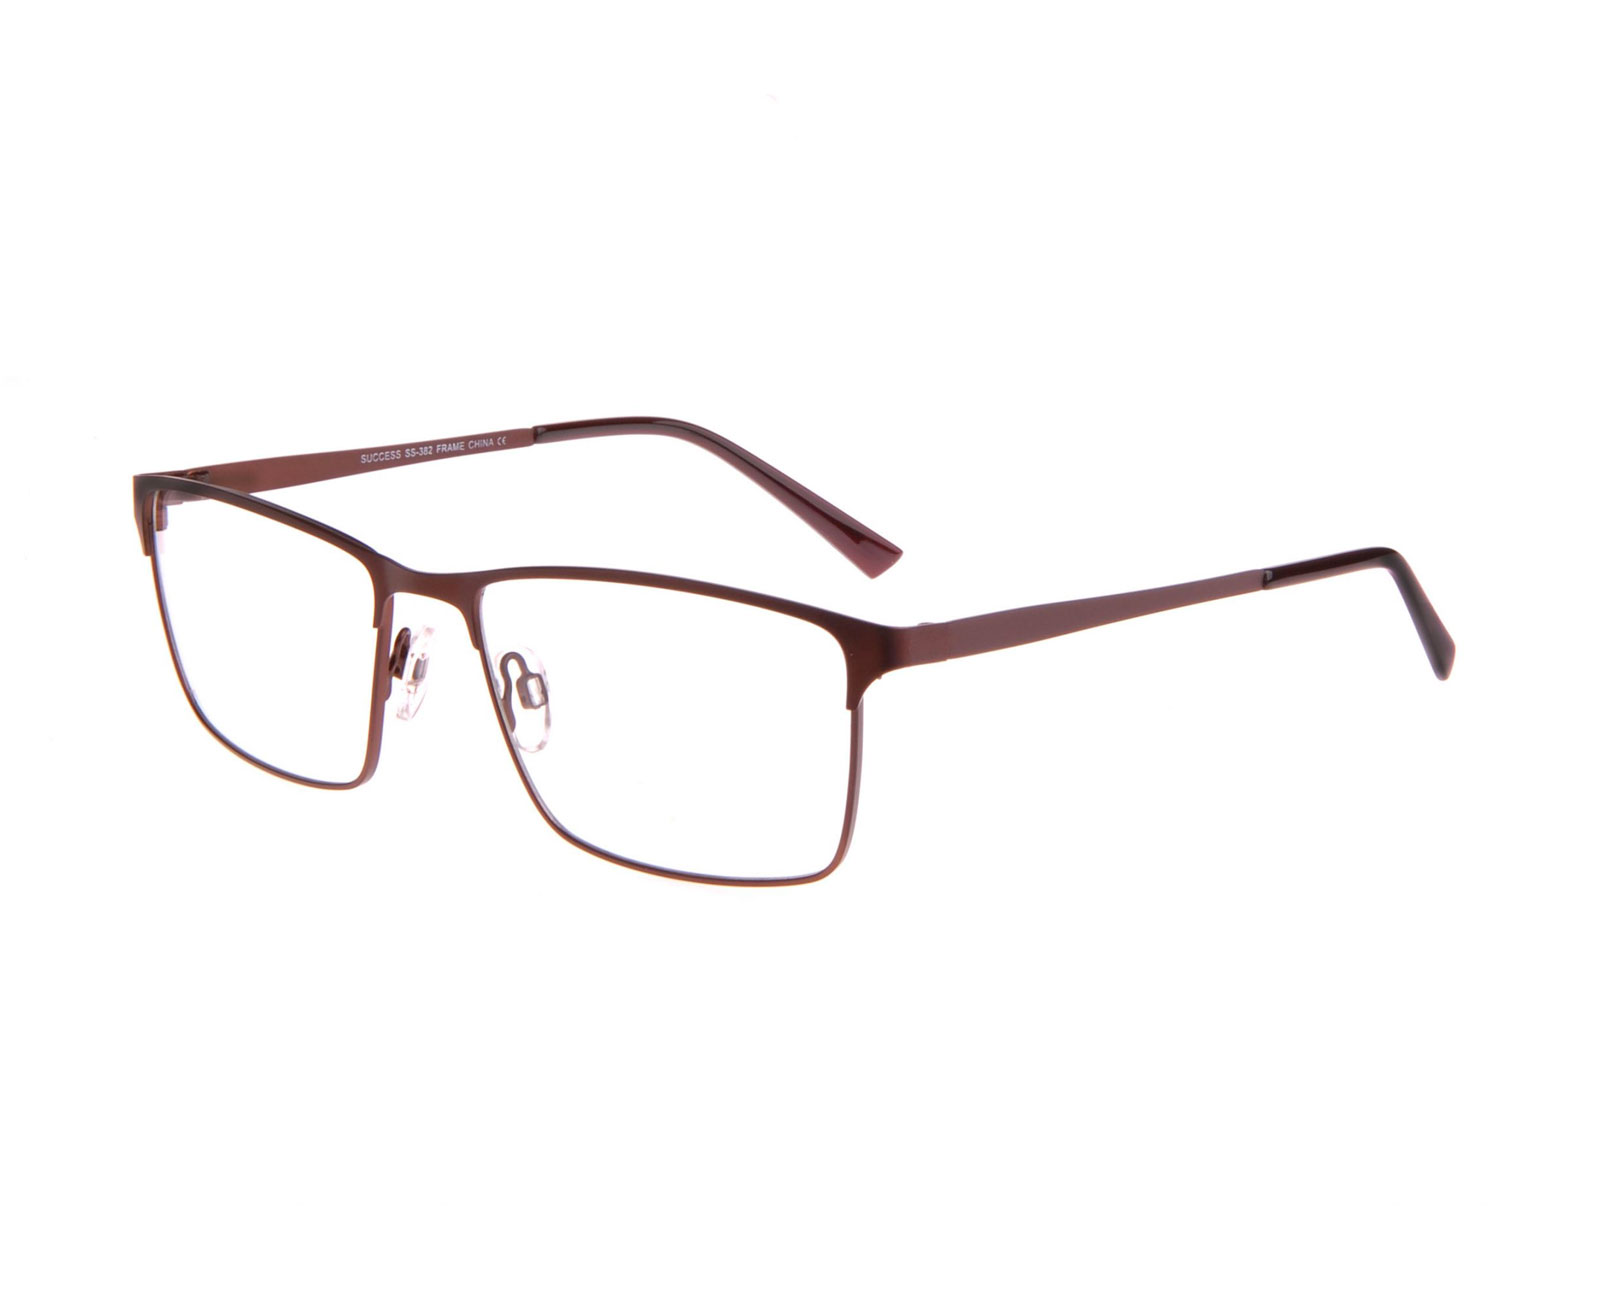 Success SS-382 in Brown